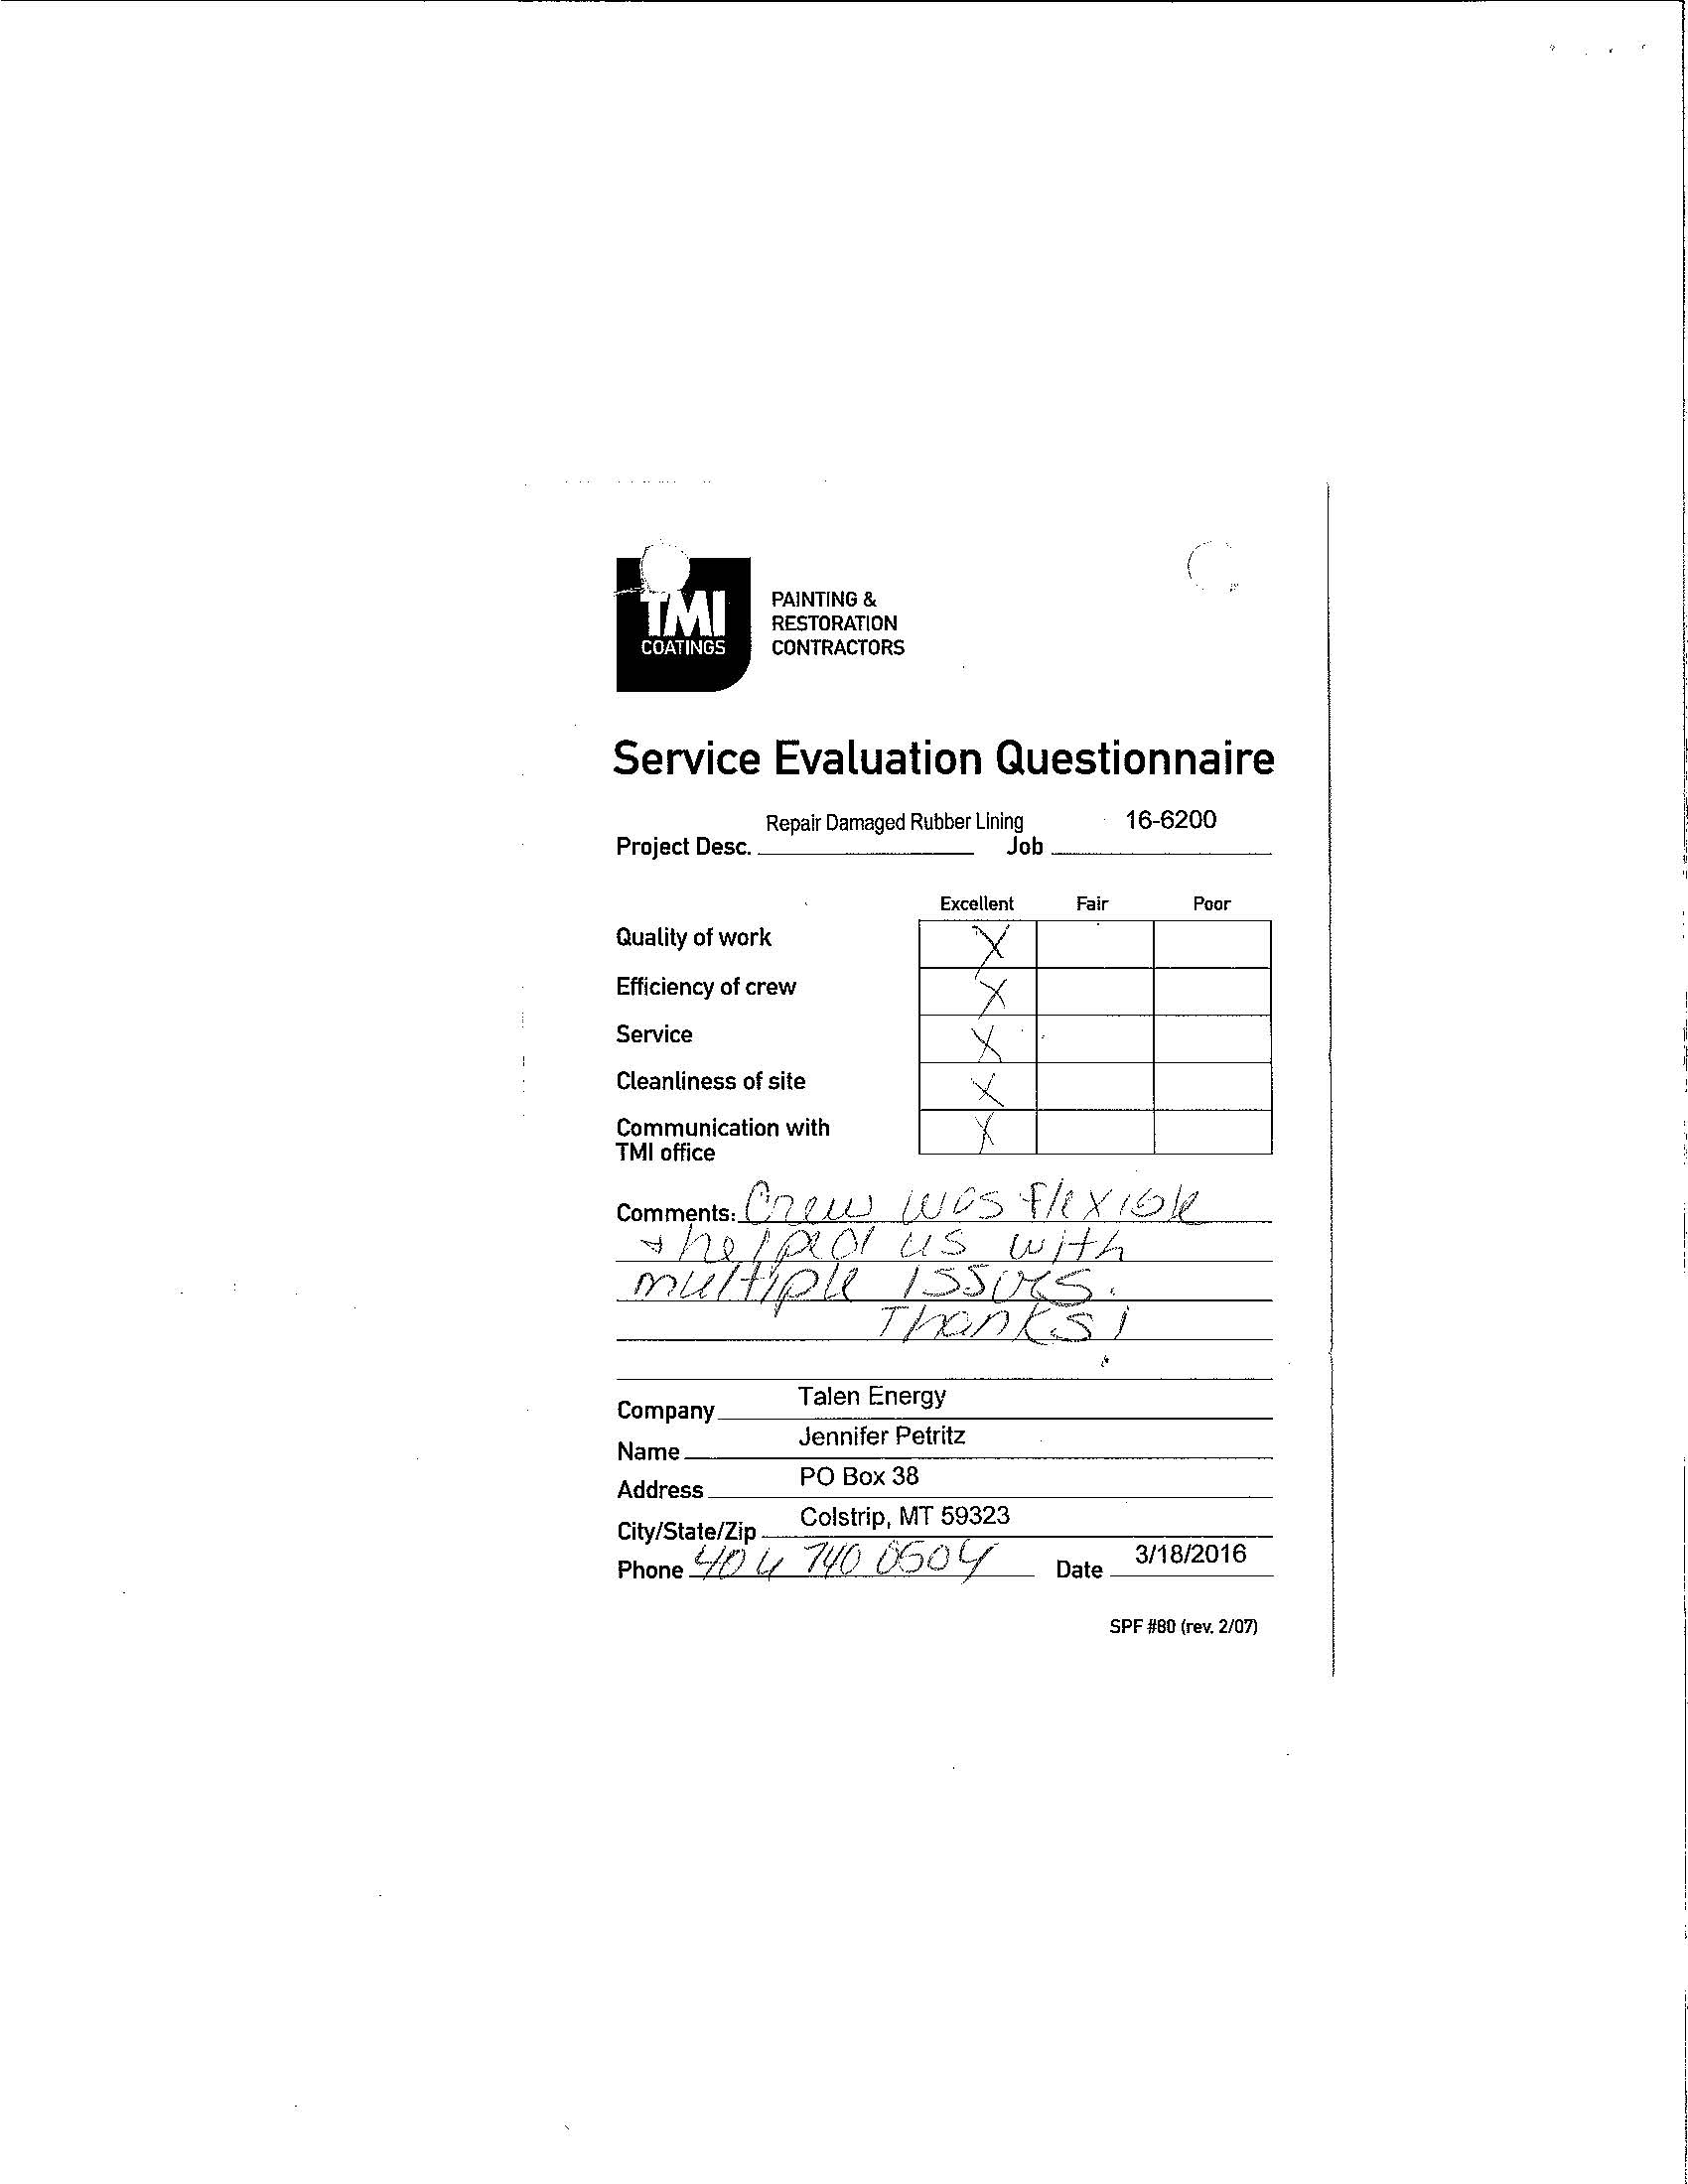 Evaluation form with positive scorings.